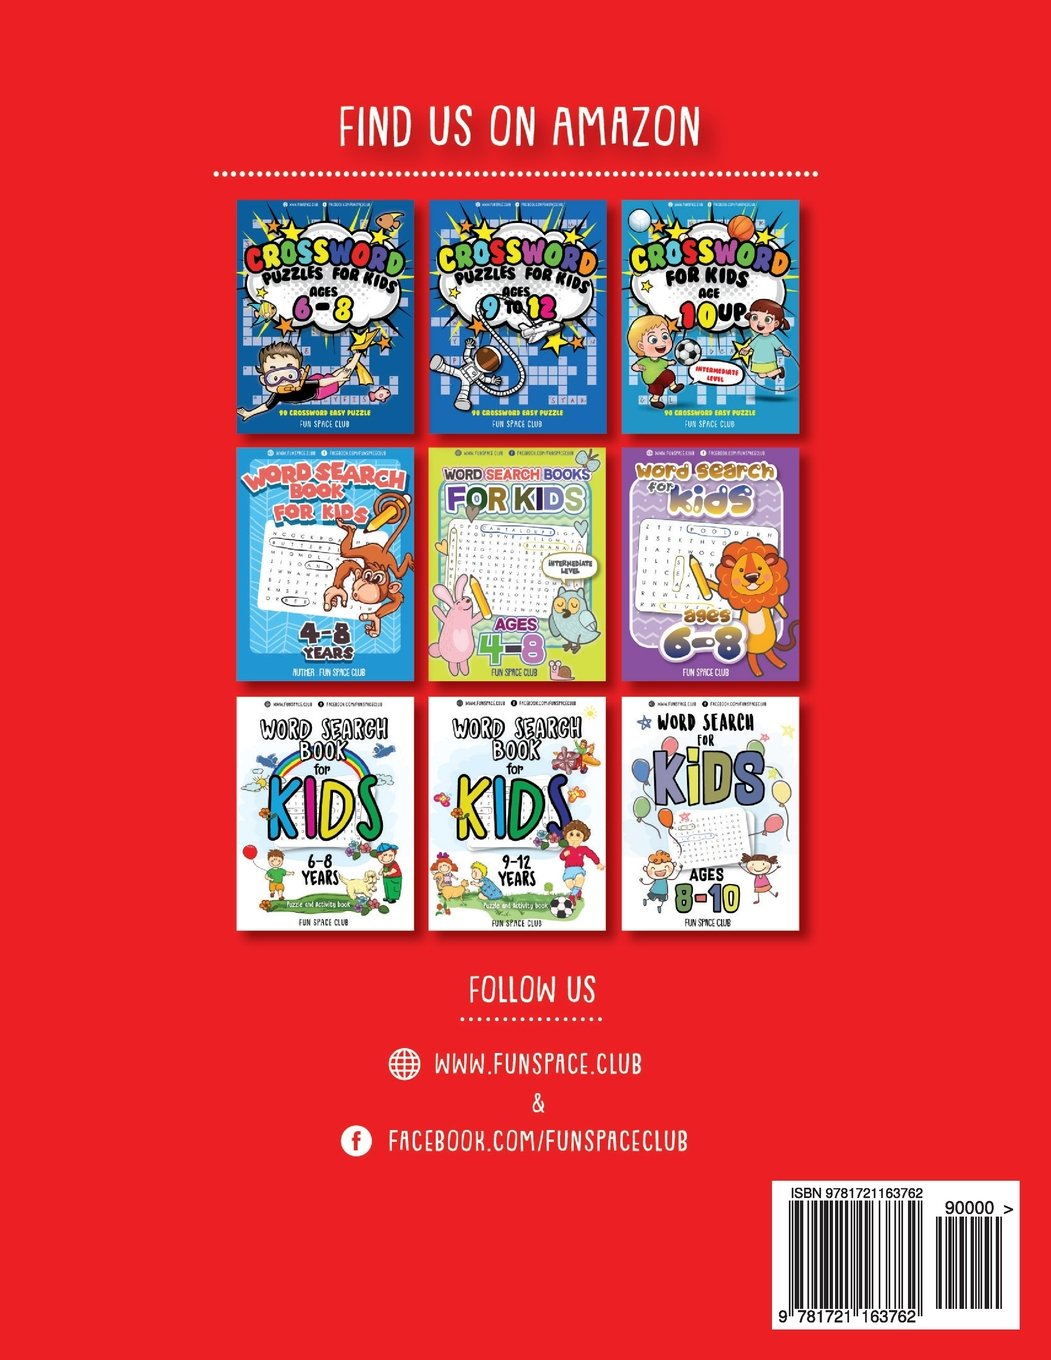 Crossword Puzzles for Kids Ages 8-10: 90 Crossword Easy